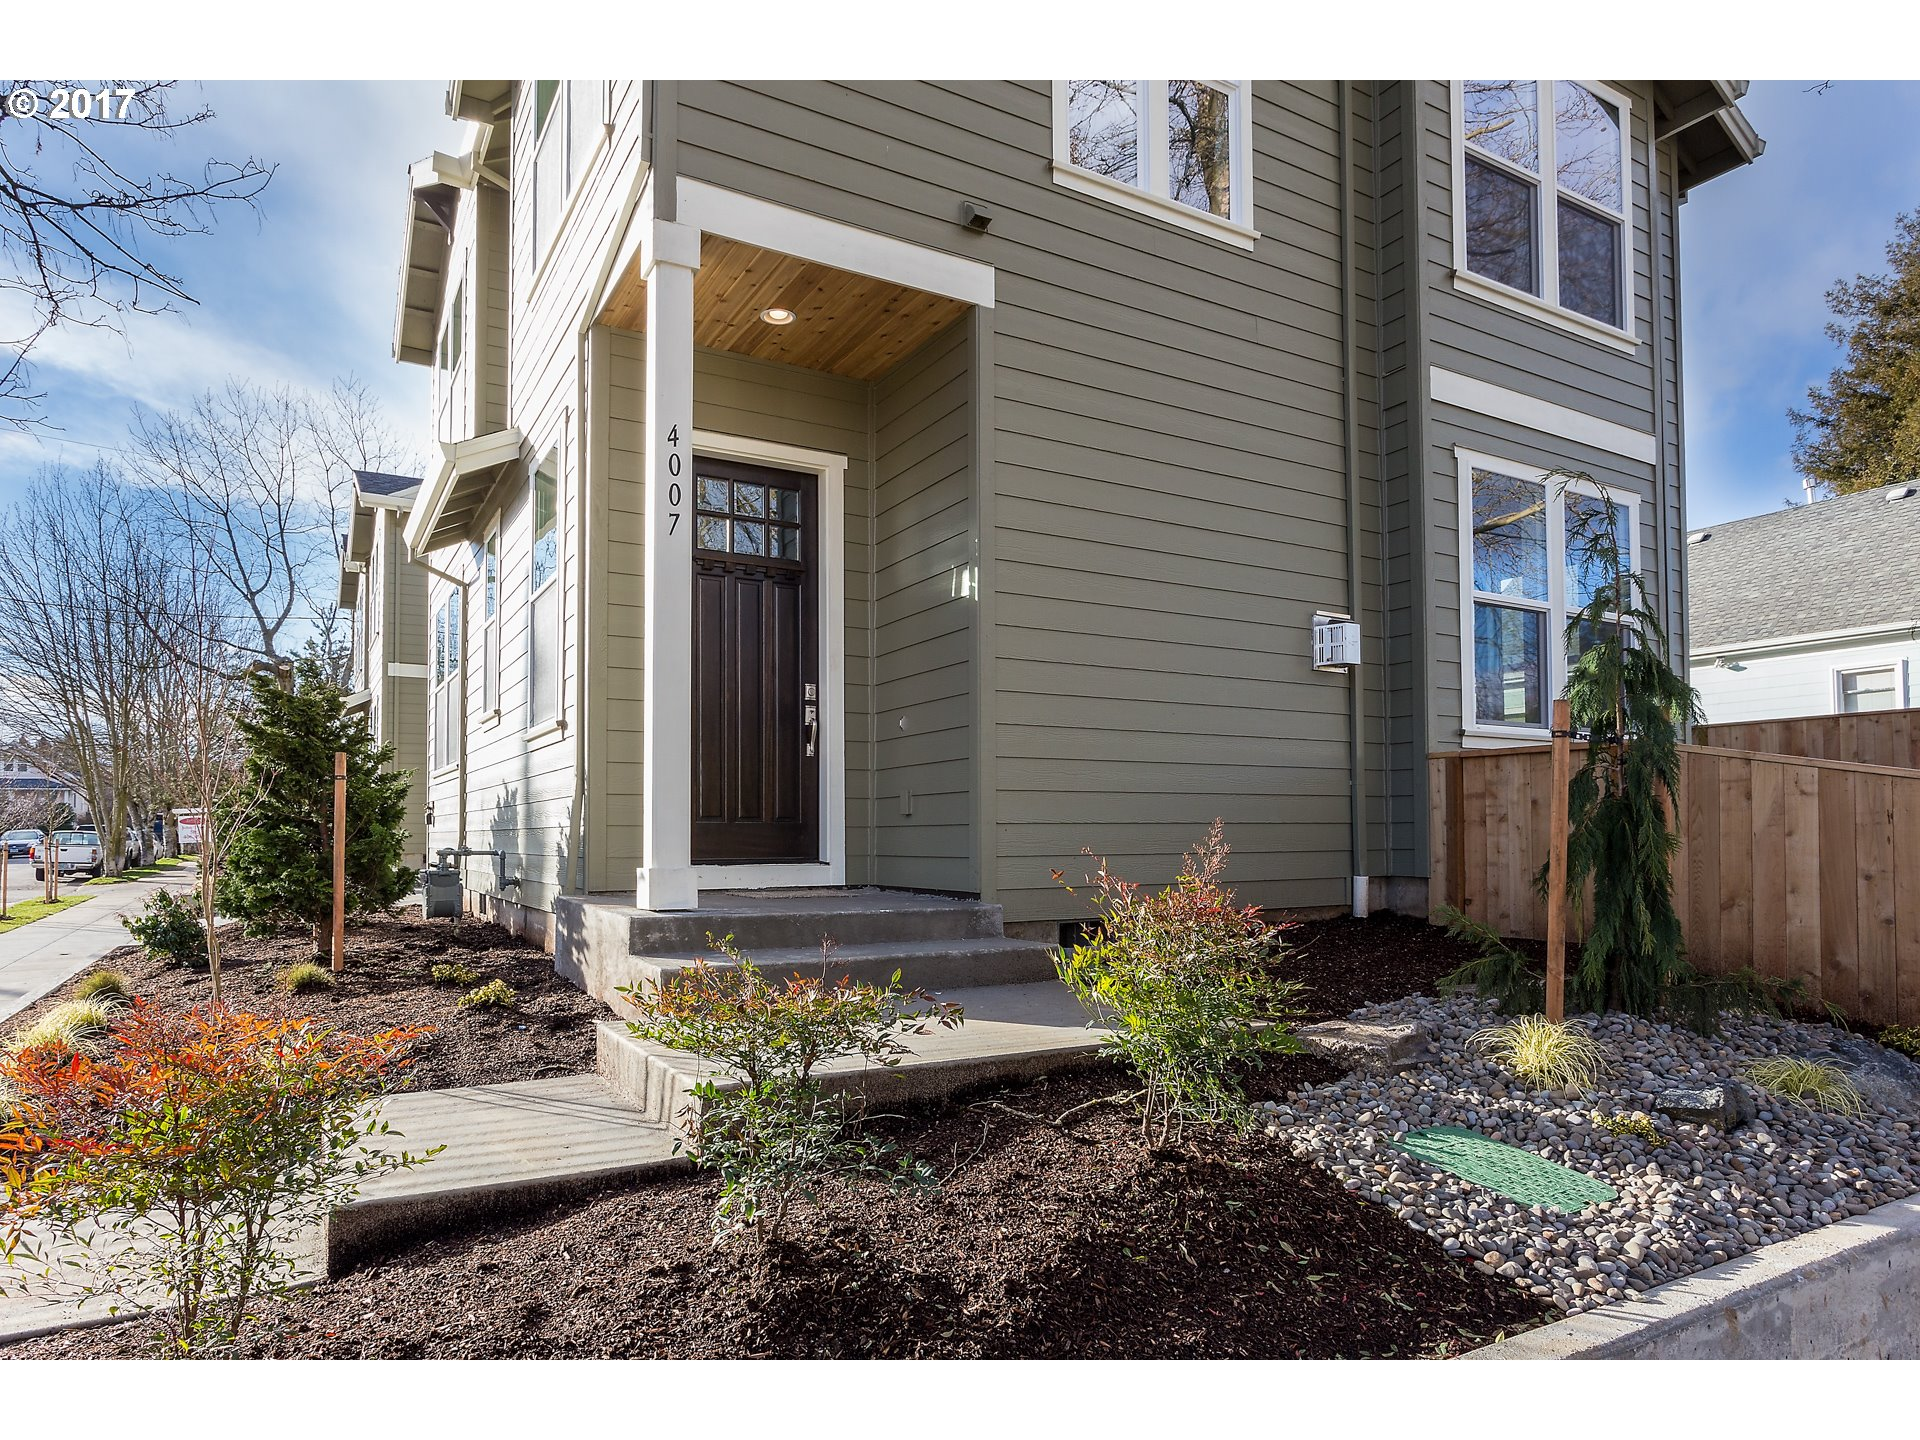 4007 NE 15TH AVE, Portland, OR 97212